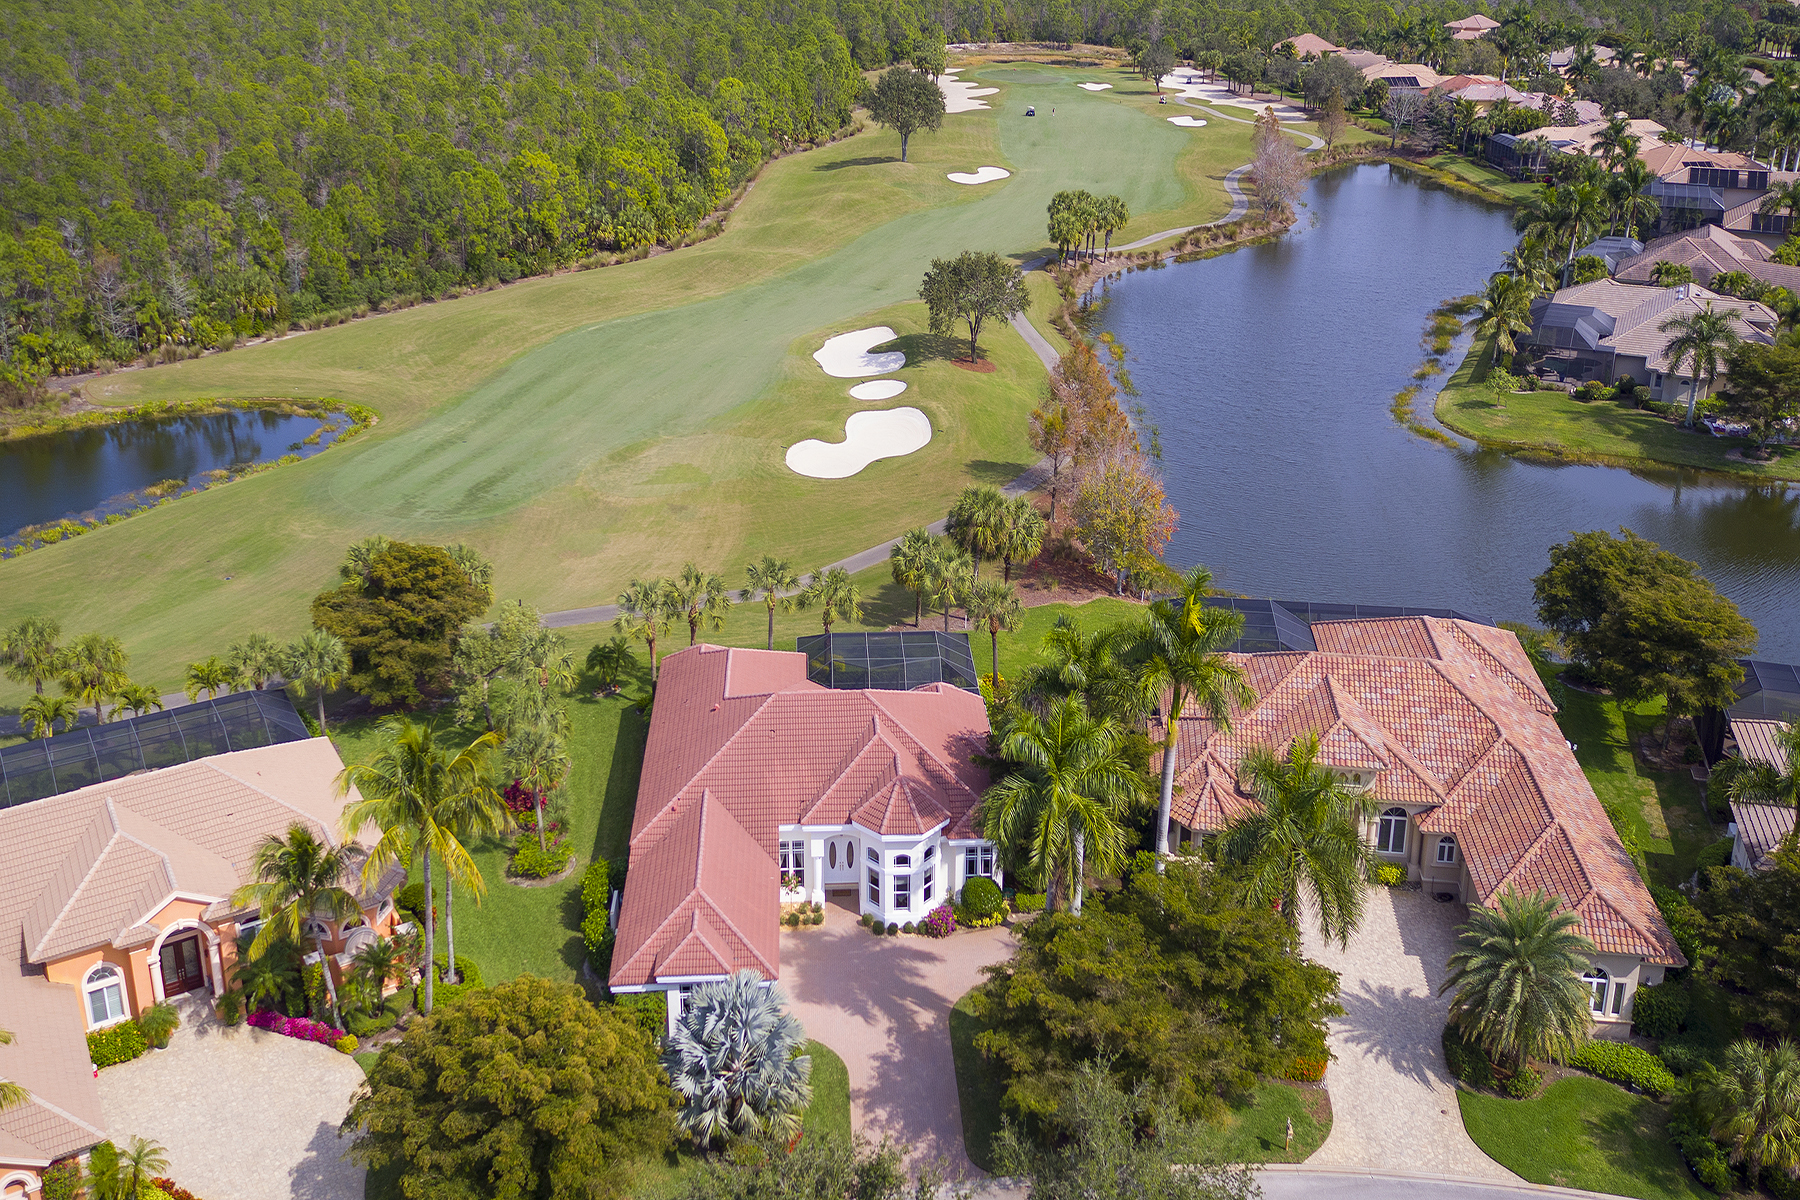 Single Family Homes için Satış at SHADOW WOOD AT THE BROOKS - FAIRVIEW 22251 Fairview Bend Drive, Estero, Florida 34135 Amerika Birleşik Devletleri